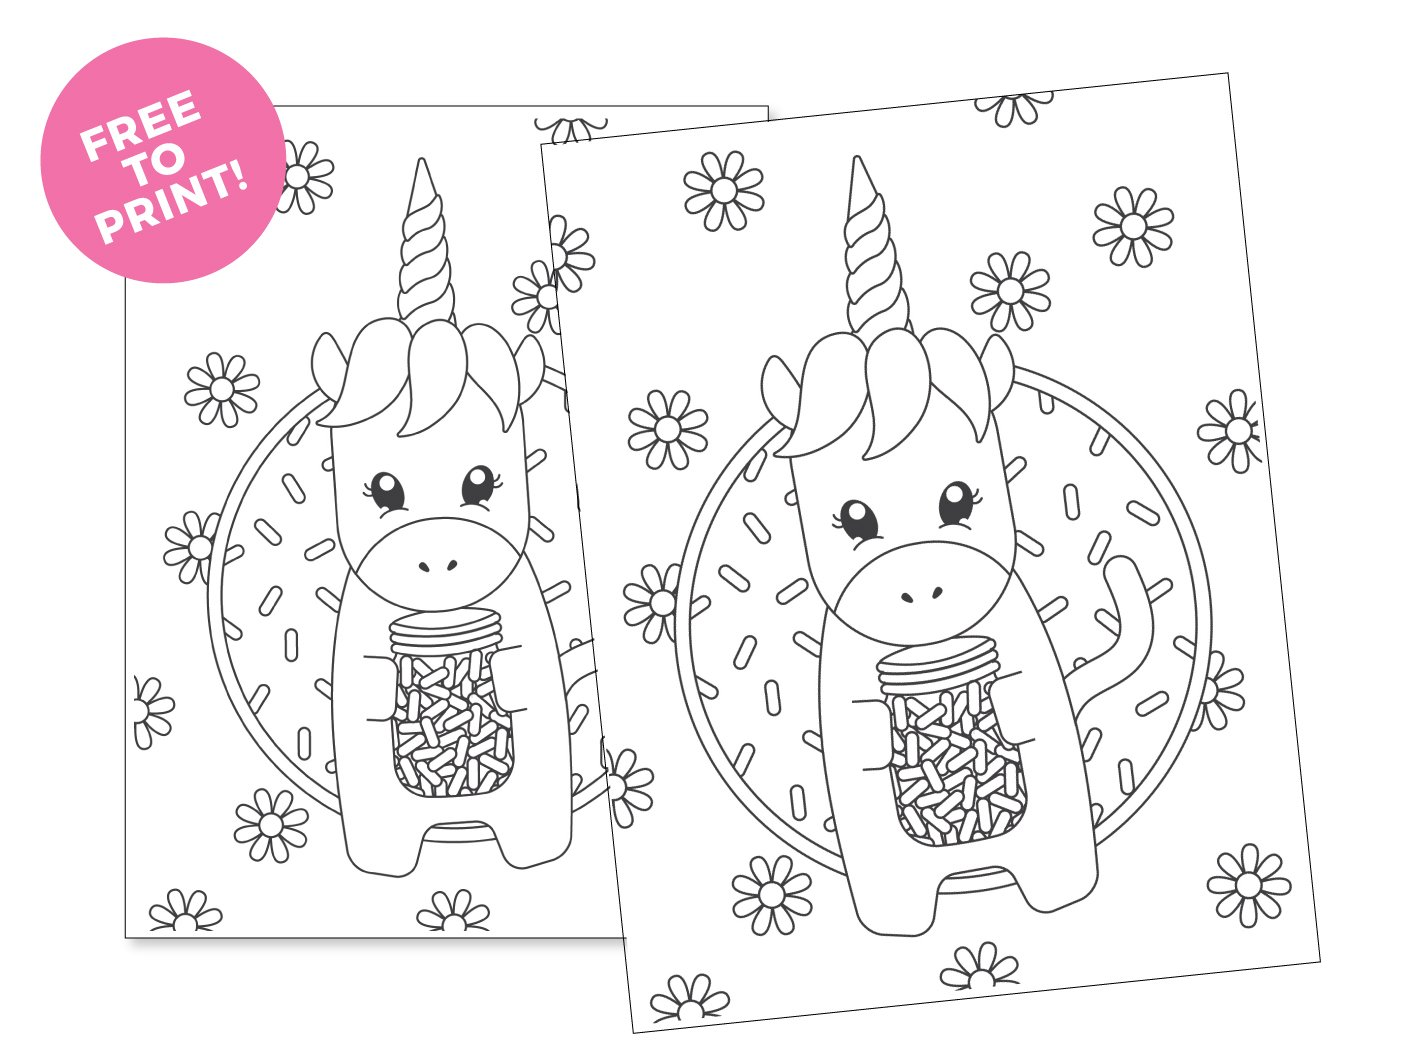 graphic regarding Printable Unicorn Coloring Pages referred to as Printable Unicorn Coloring Web site - Style Take in Repeat